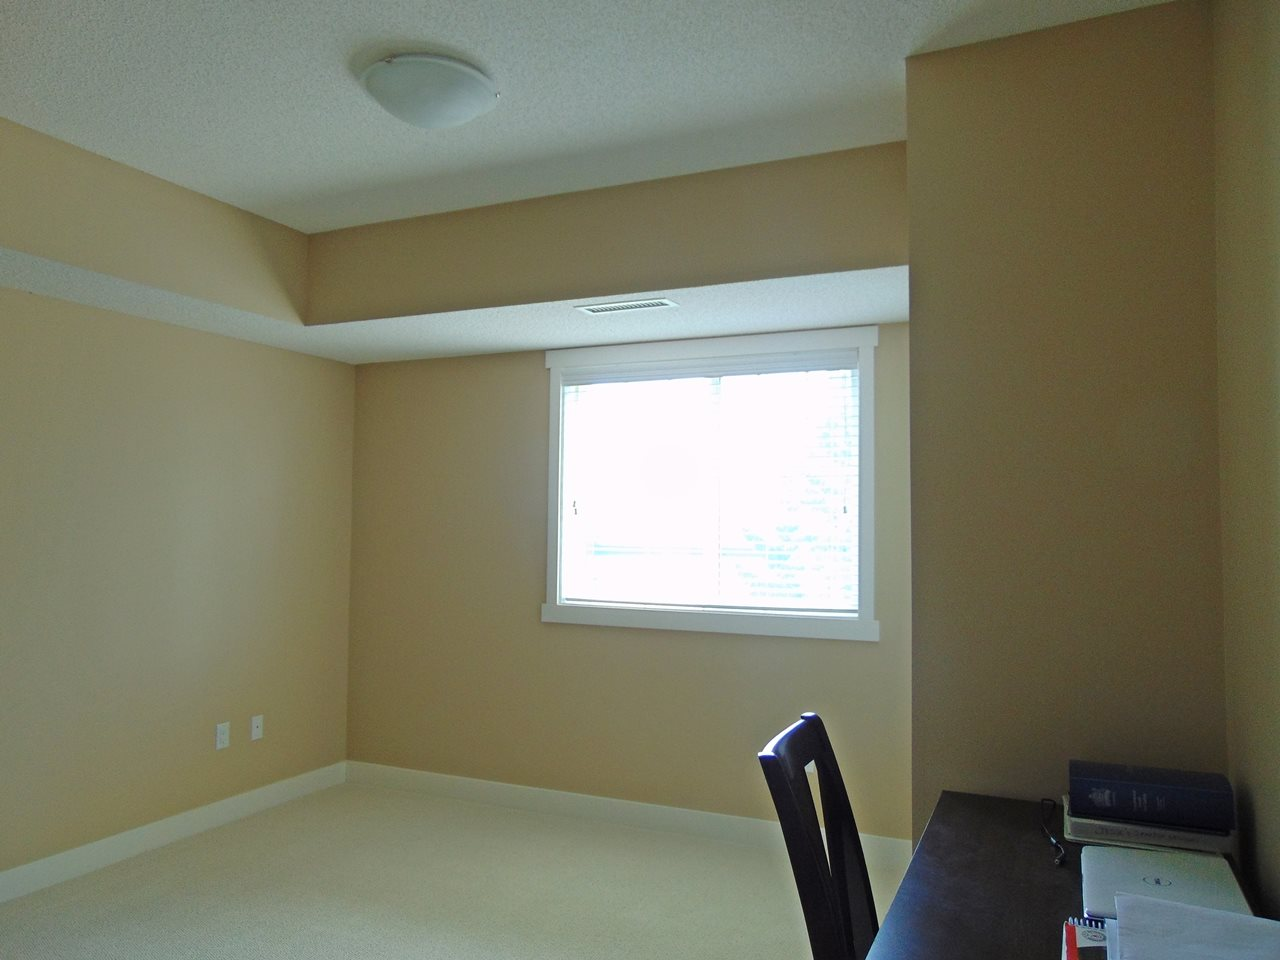 Photo 20: 203 4922 52 Street: Gibbons Condo for sale : MLS® # E4071334